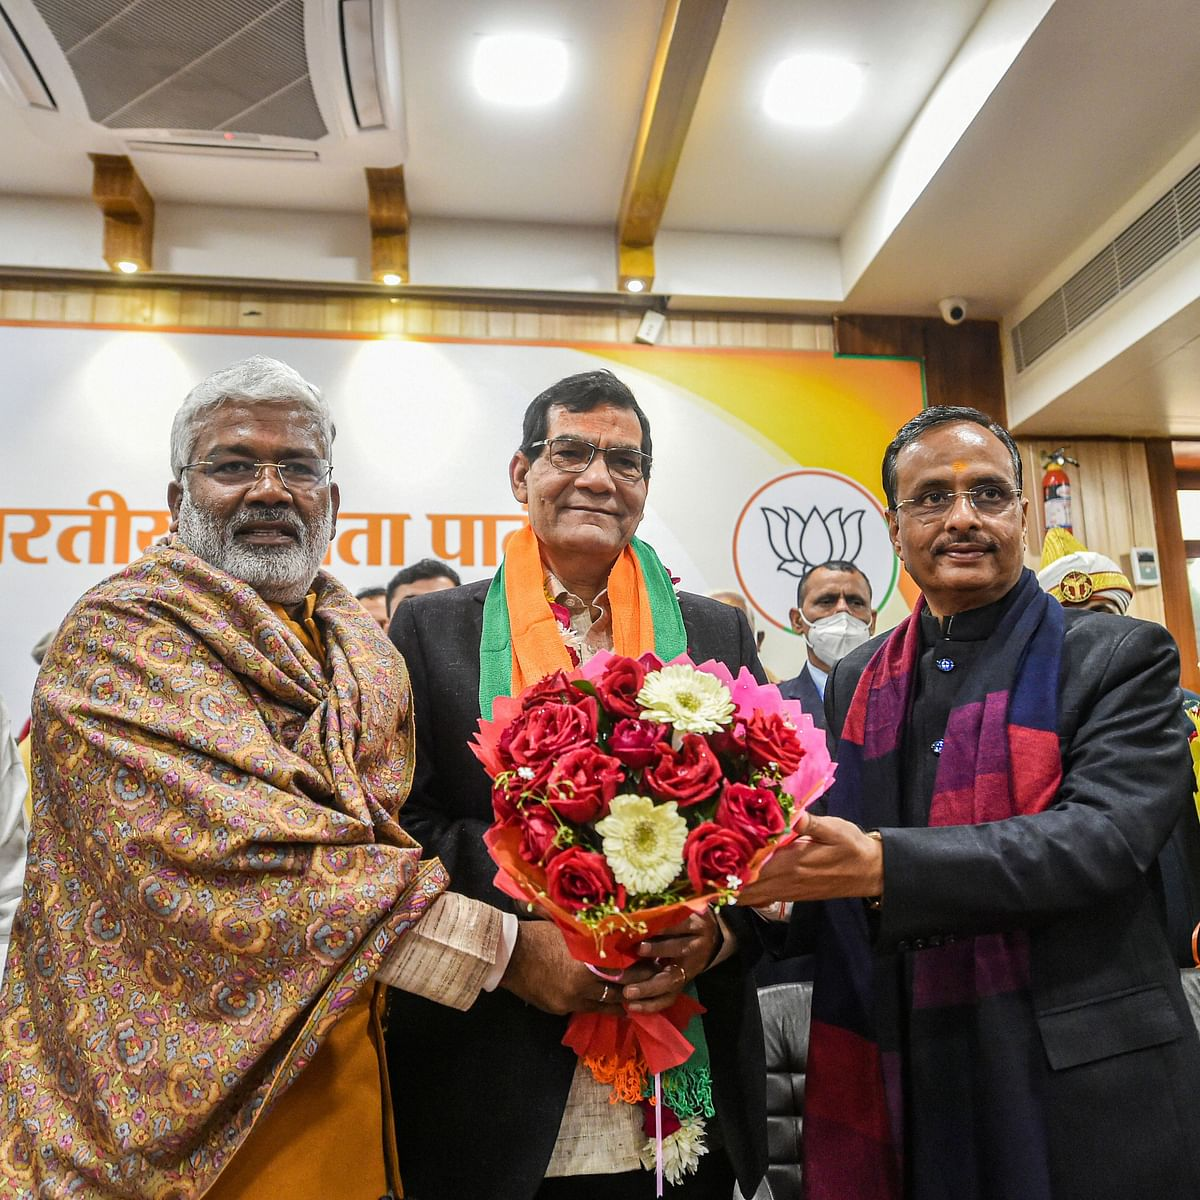 Former IAS officer and Modi advisor joins BJP in UP: Here is all you need to know about AK Sharma